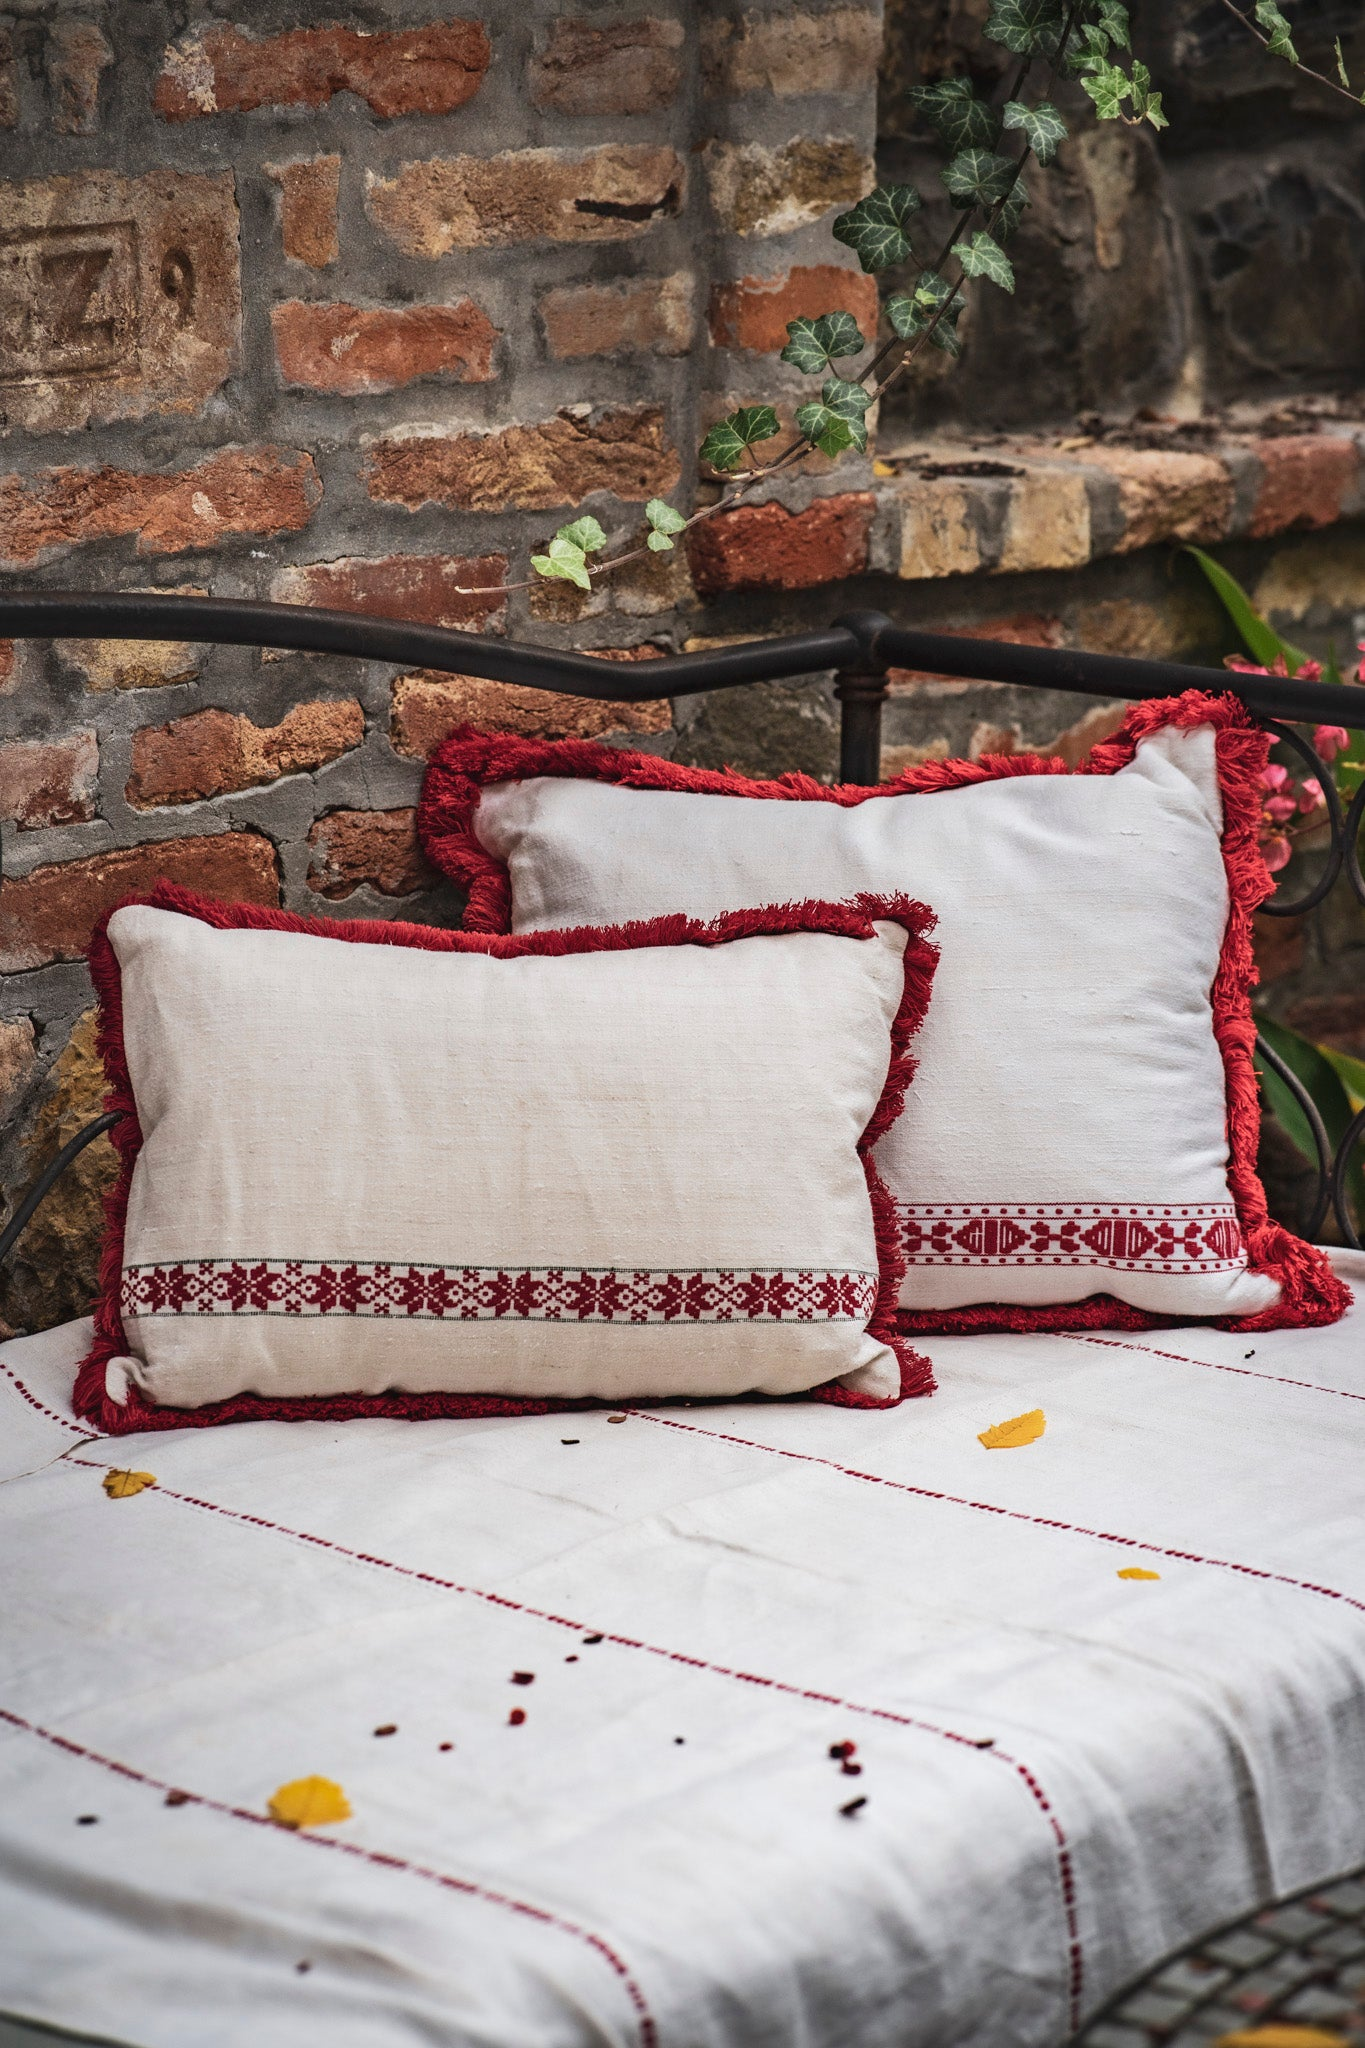 Pillow: Embroidered antique handwoven Hungarian hemp - P071